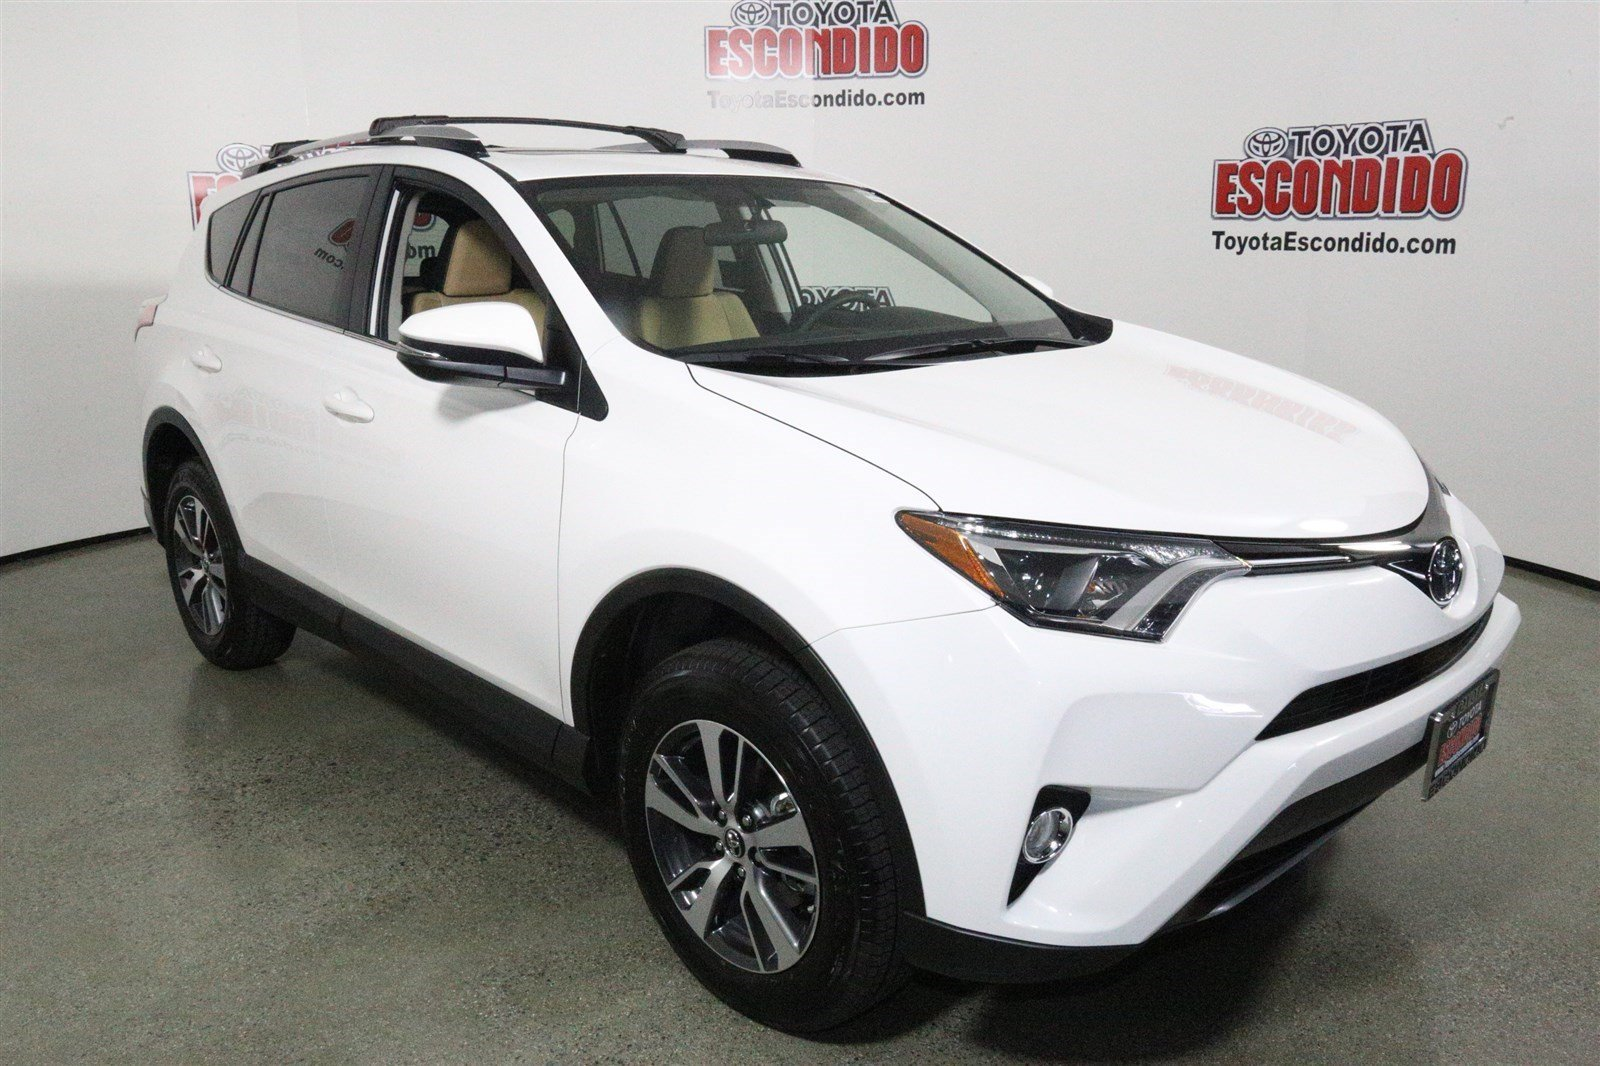 new 2017 toyota rav4 xle sport utility in escondido 1014073 toyota escondido. Black Bedroom Furniture Sets. Home Design Ideas